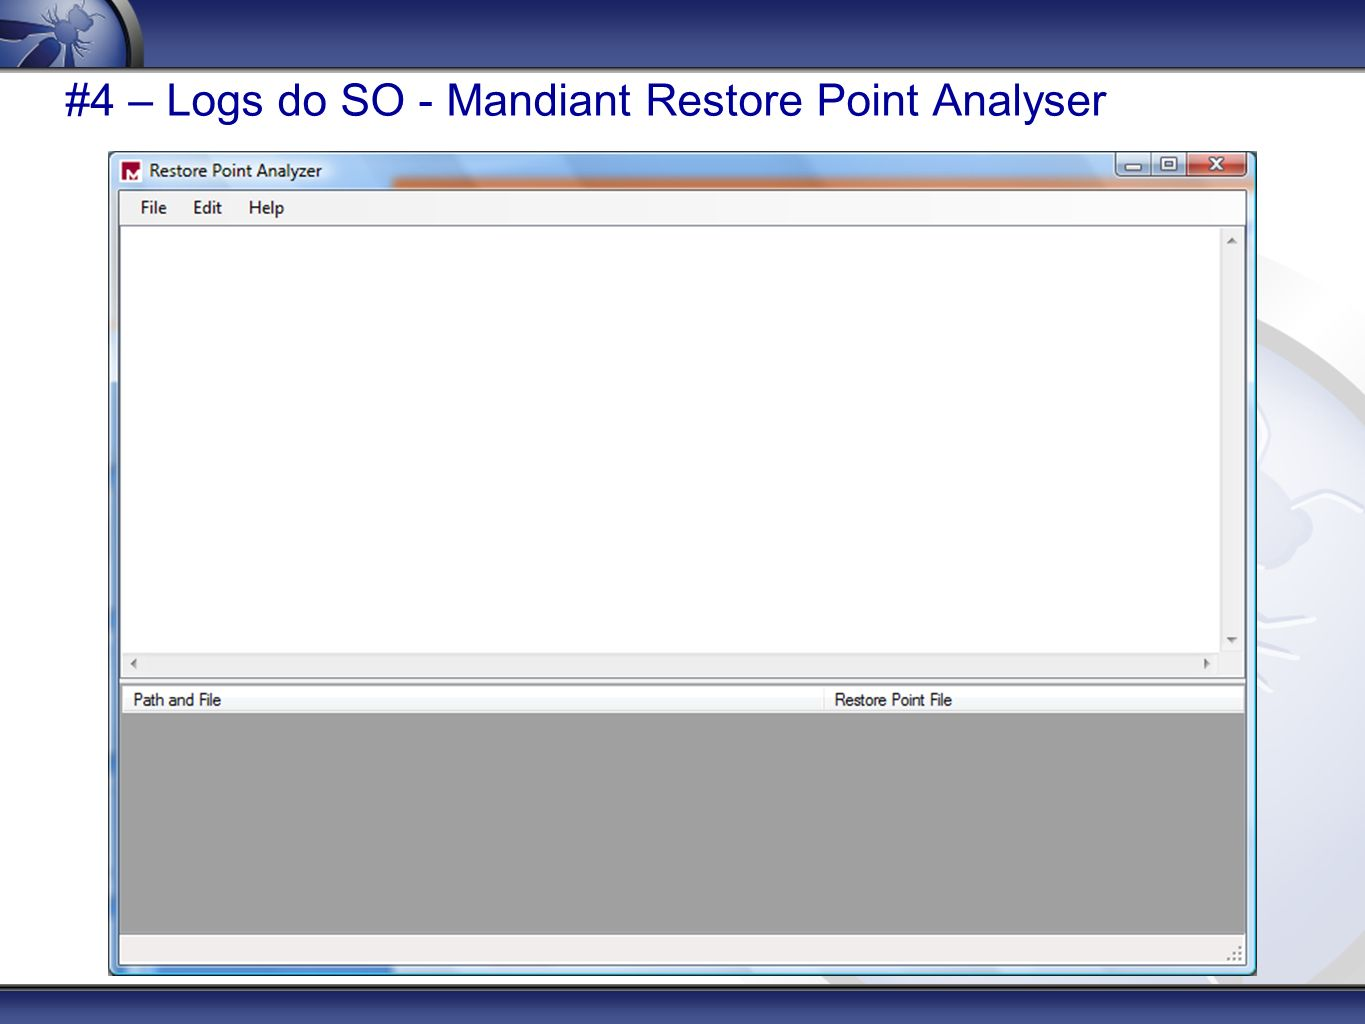 #4 – Logs do SO - Mandiant Restore Point Analyser